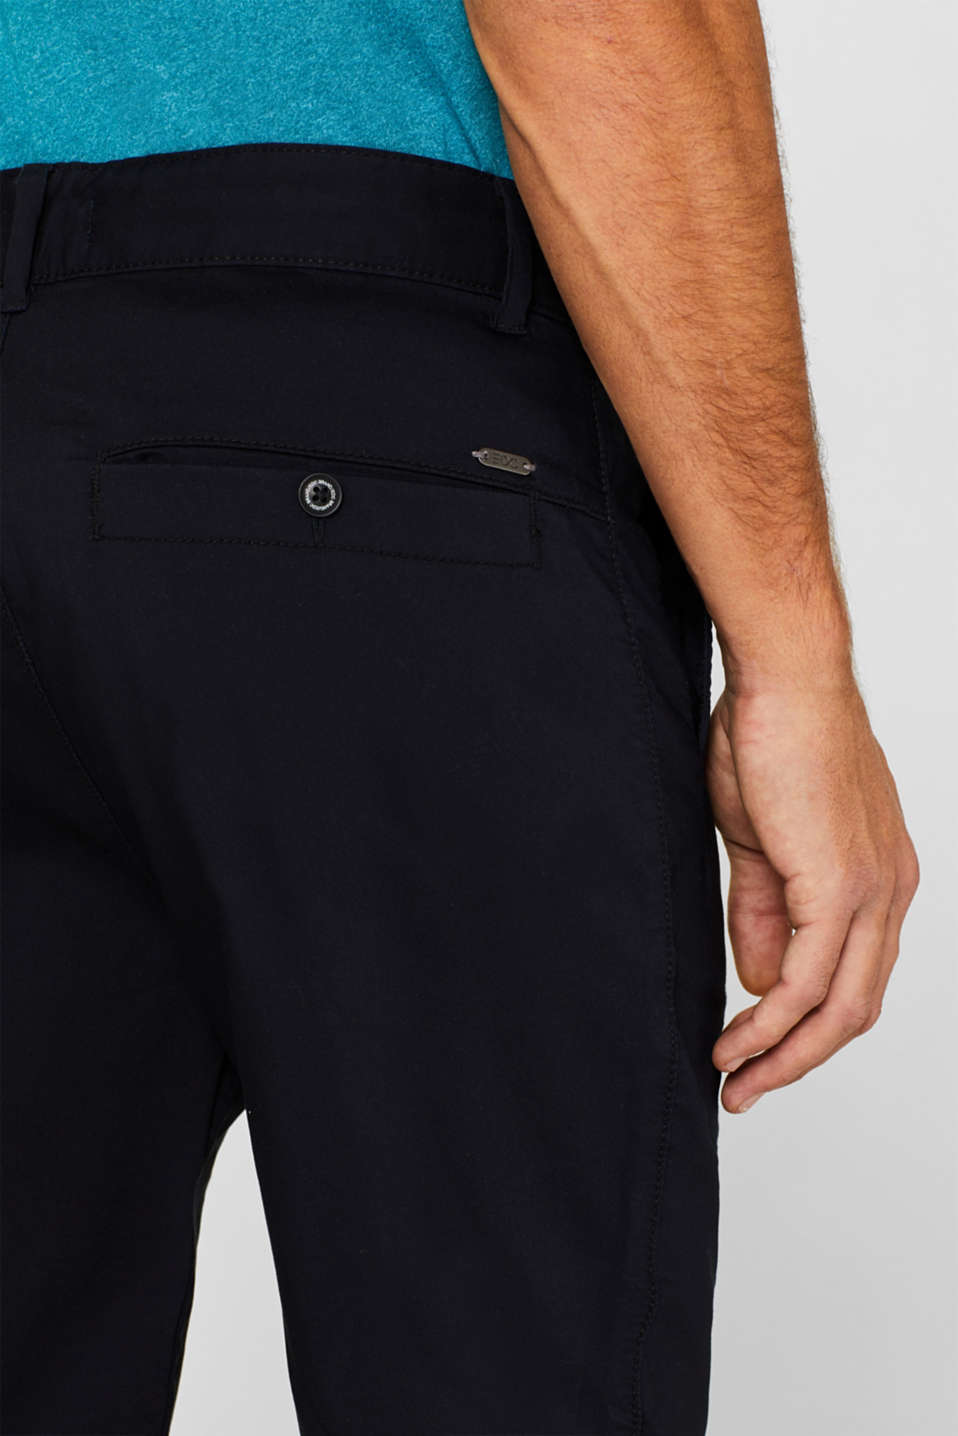 Shorts woven Slim fit, NAVY, detail image number 5